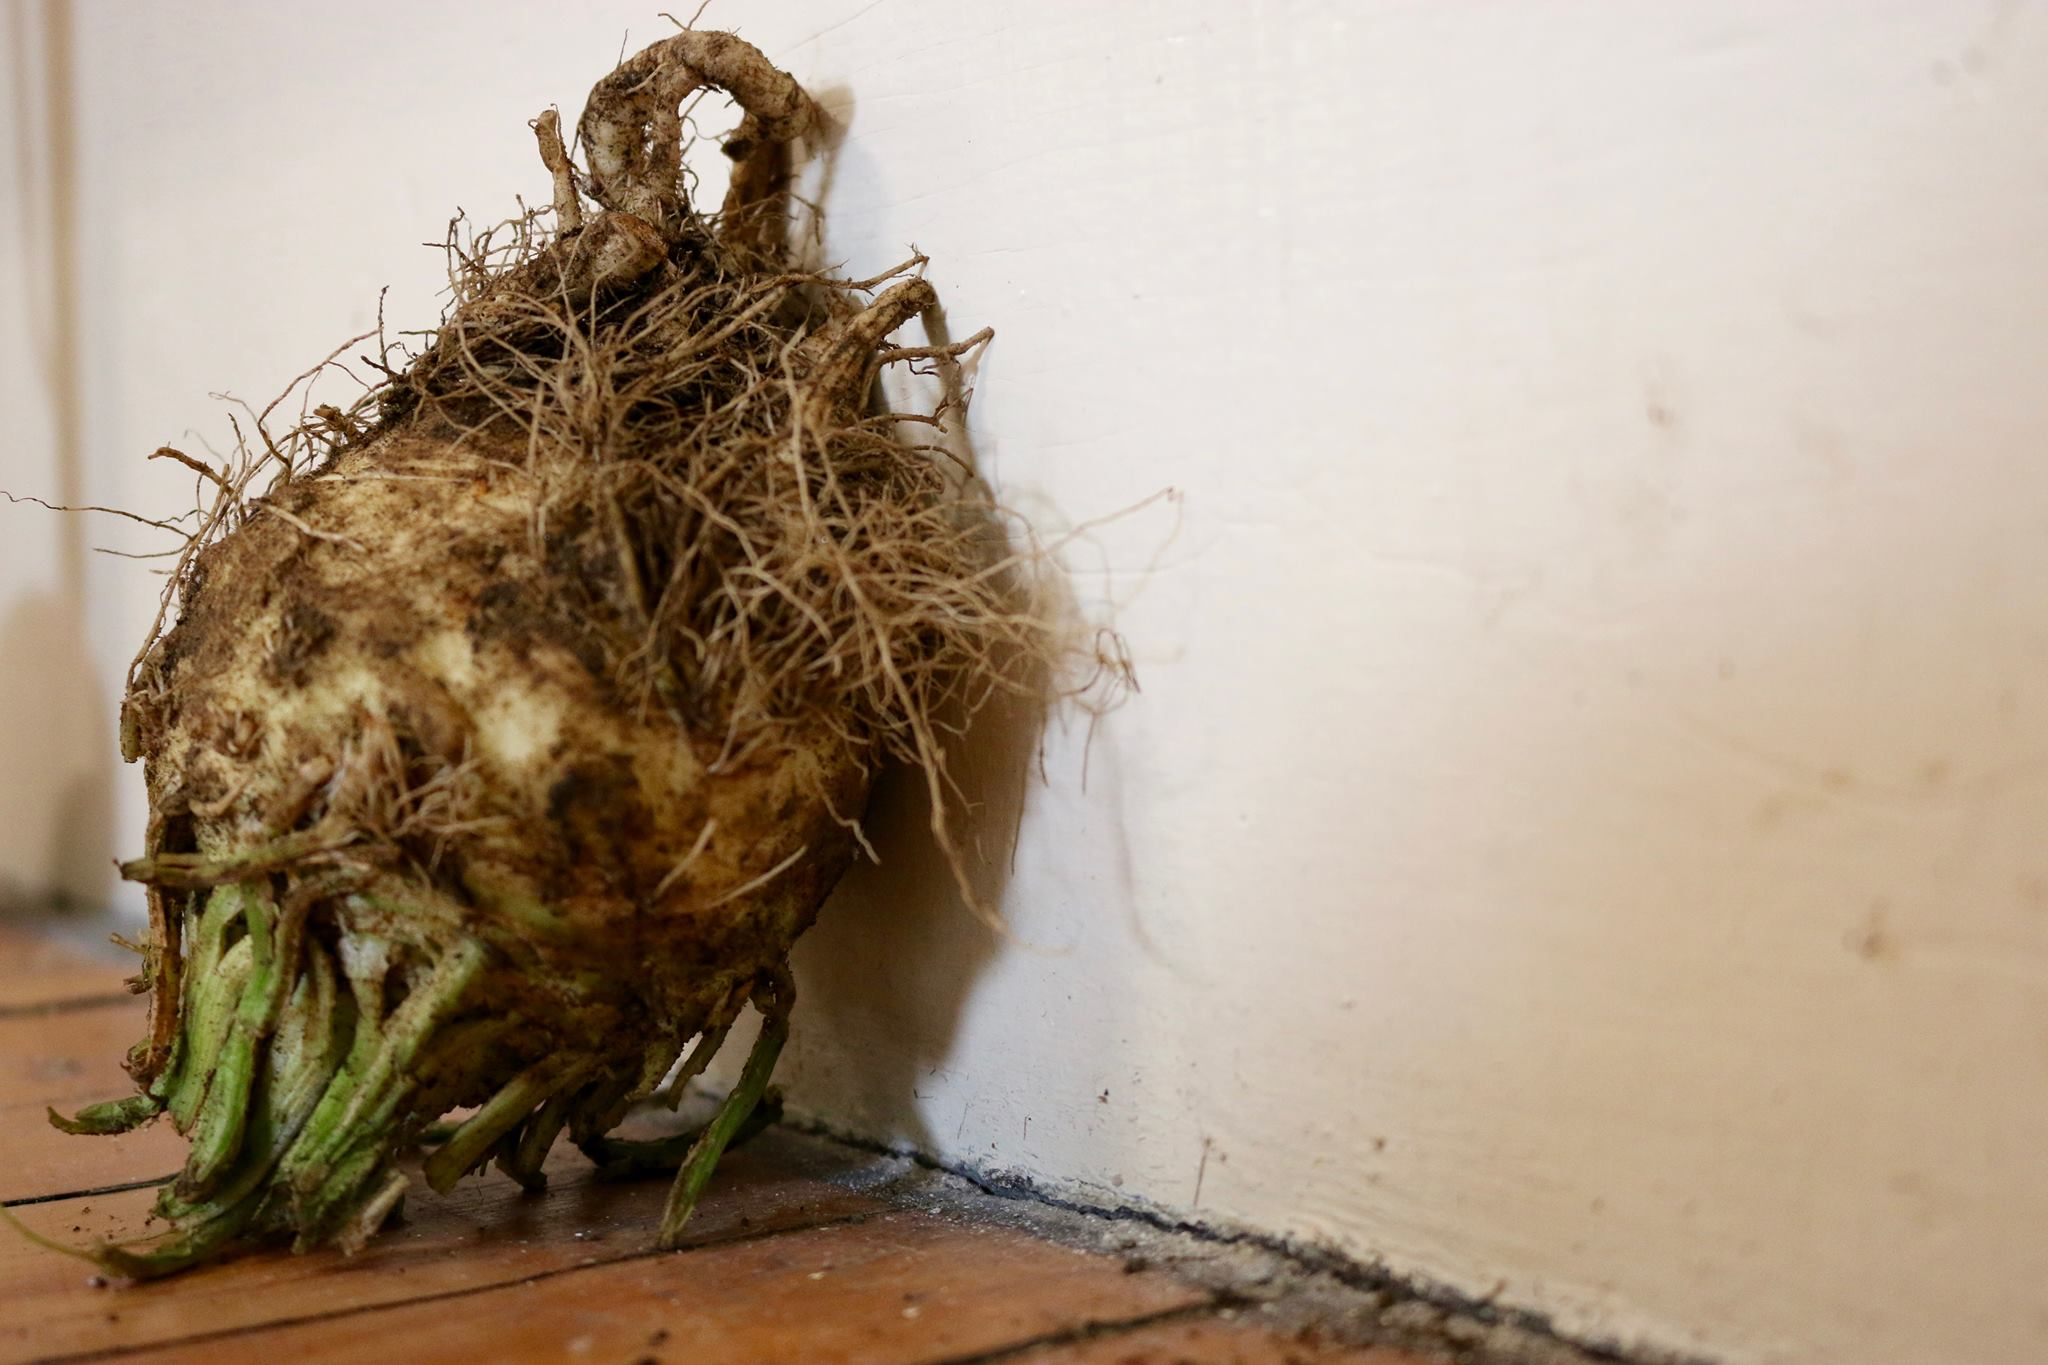 A Moody Celeriac Leans Thoughtfully Against the Wall.